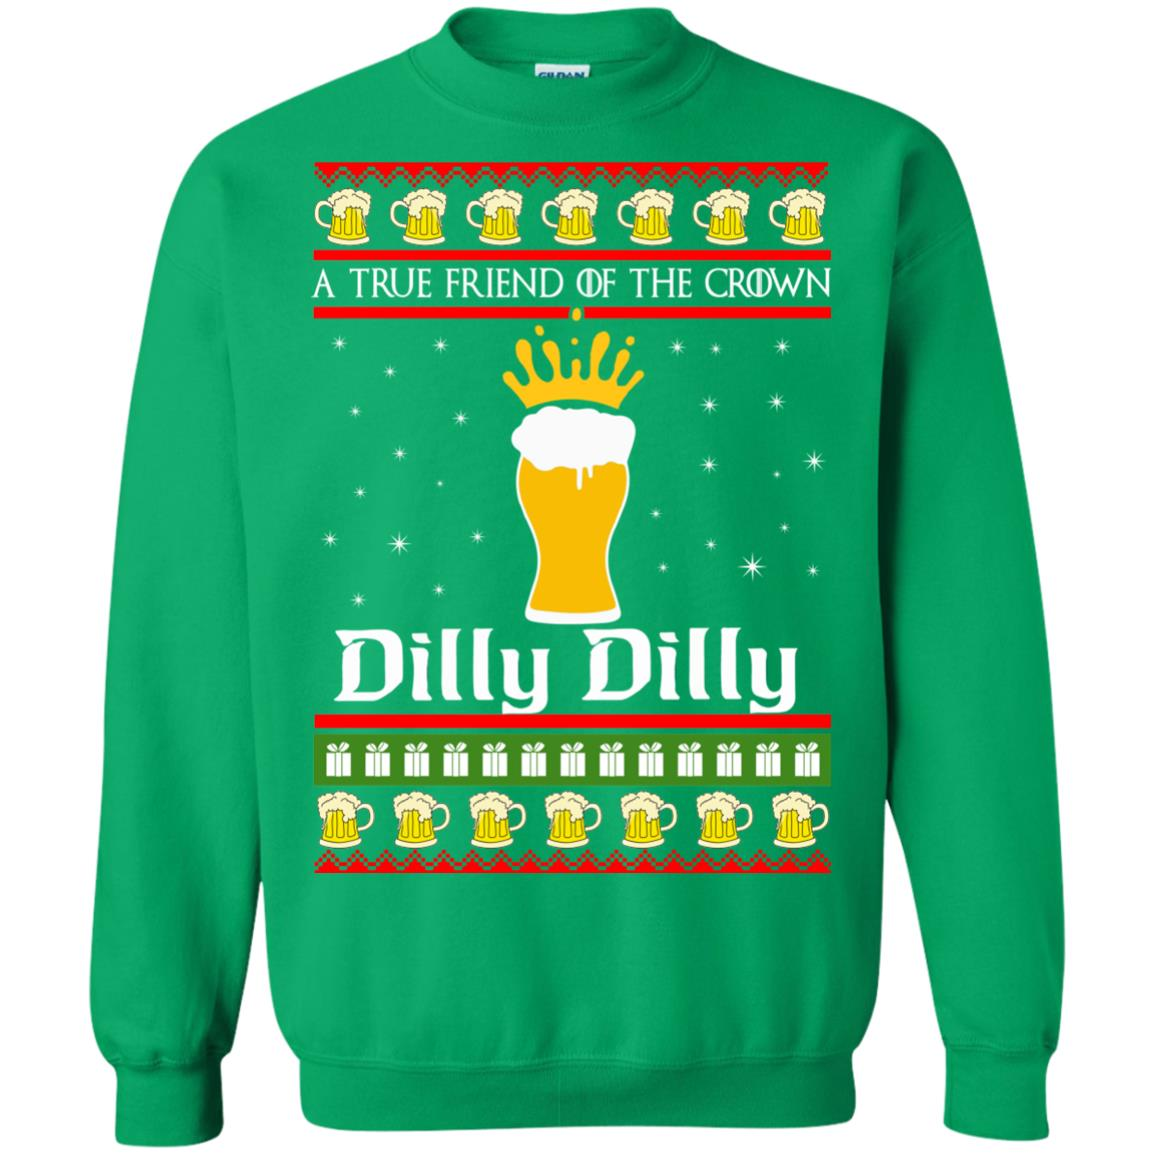 image 6329 - A True Friend Of The Crown Dilly Dilly Christmas Sweater, Hoodie